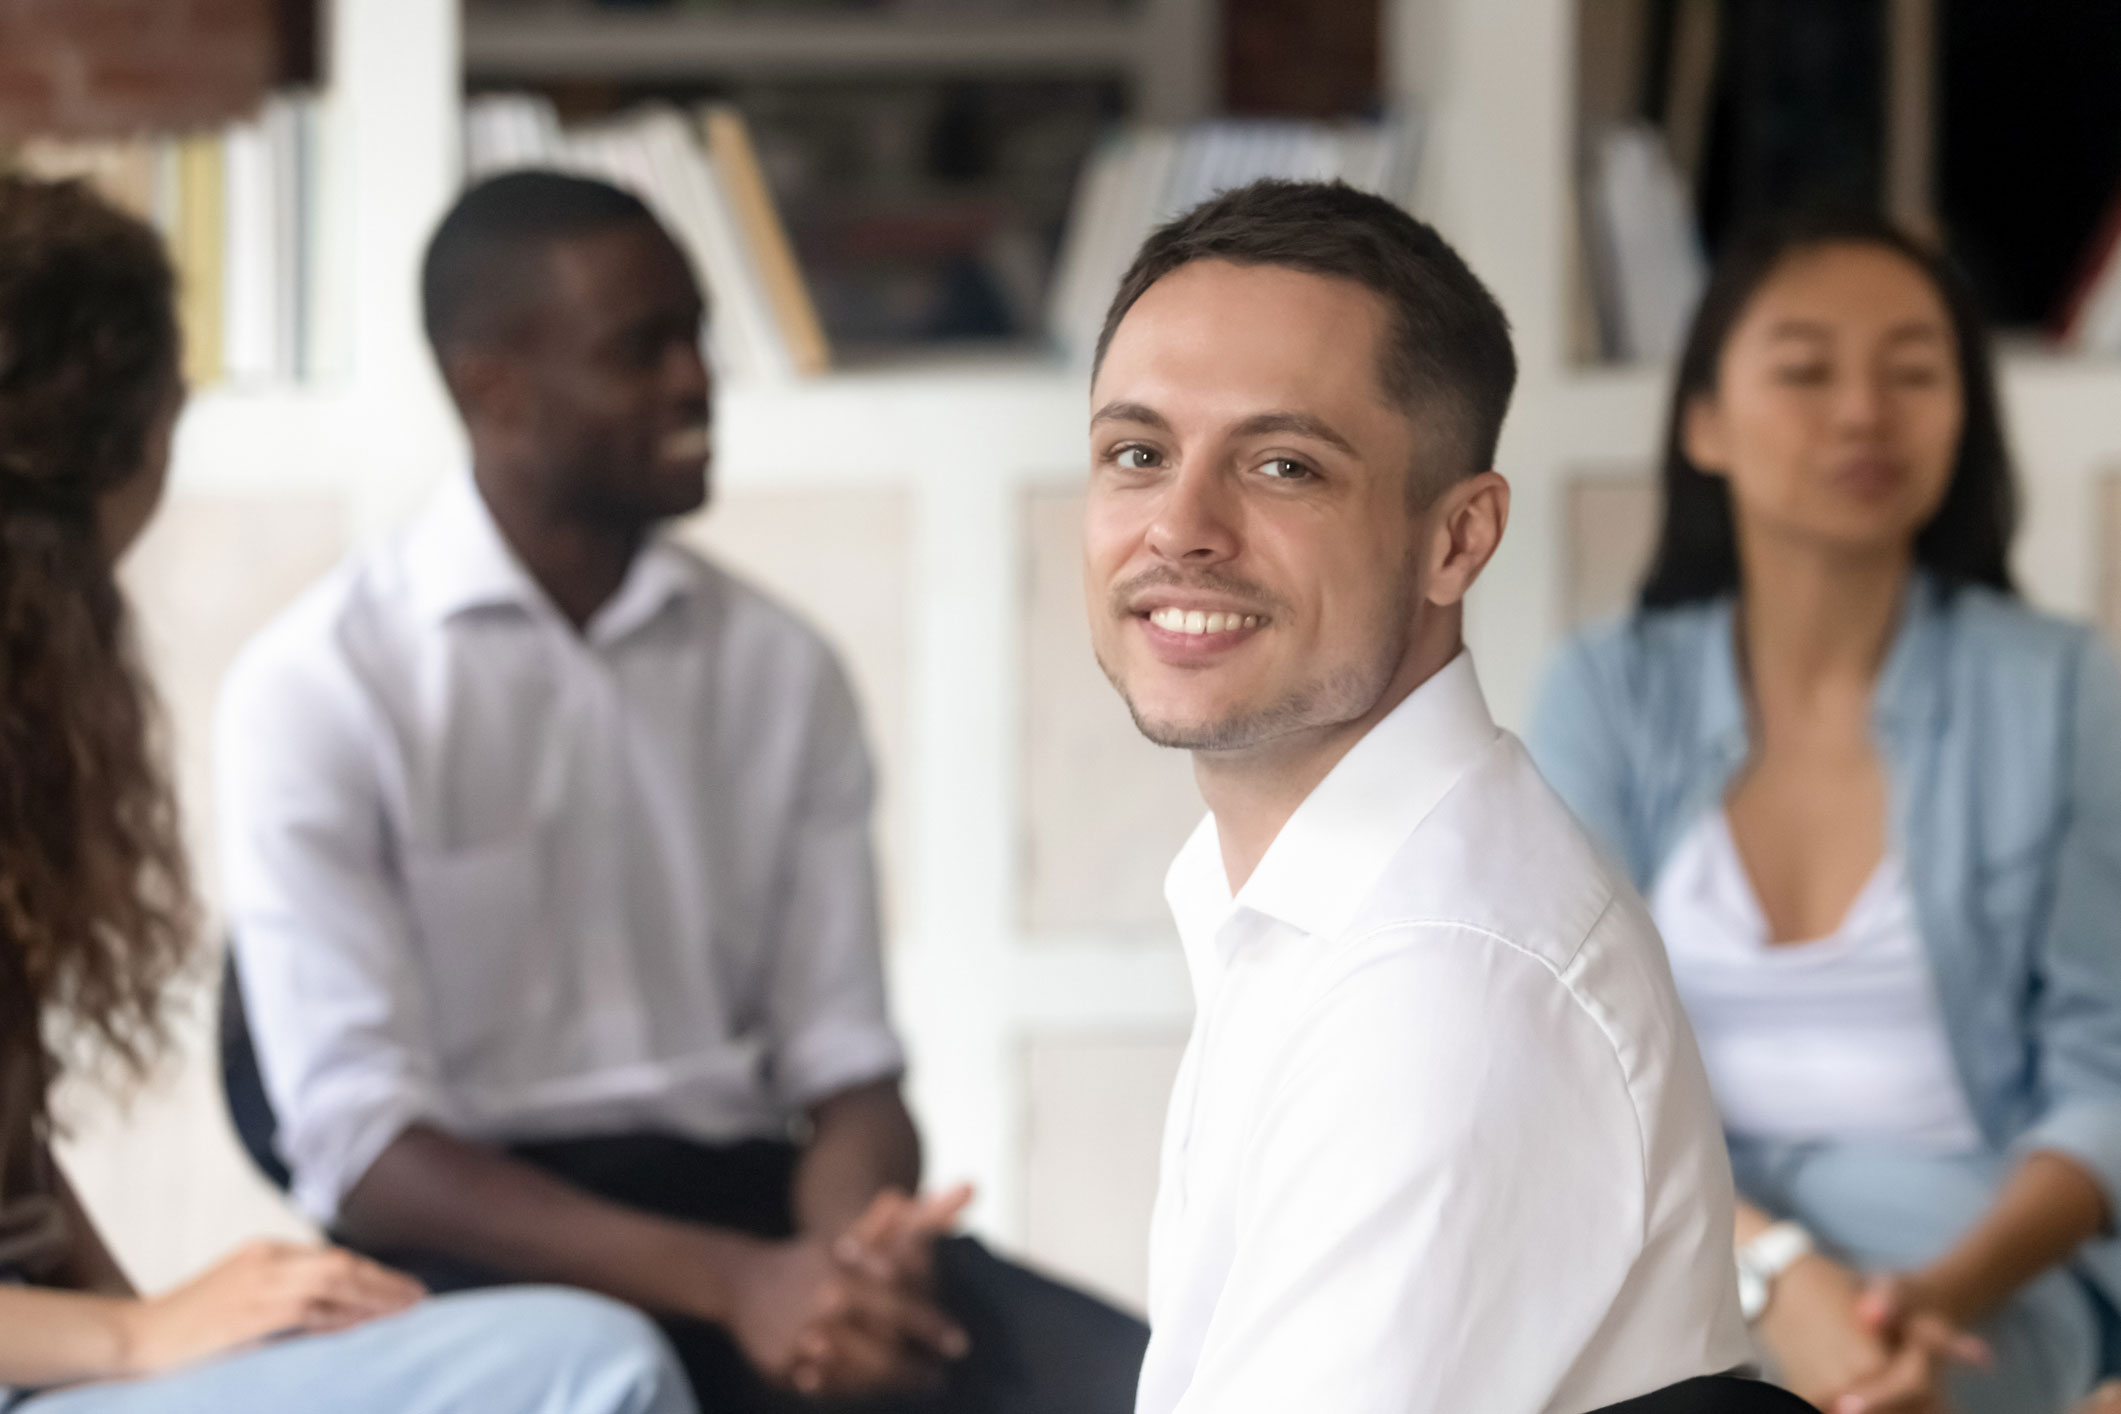 smiling man at group therapy session